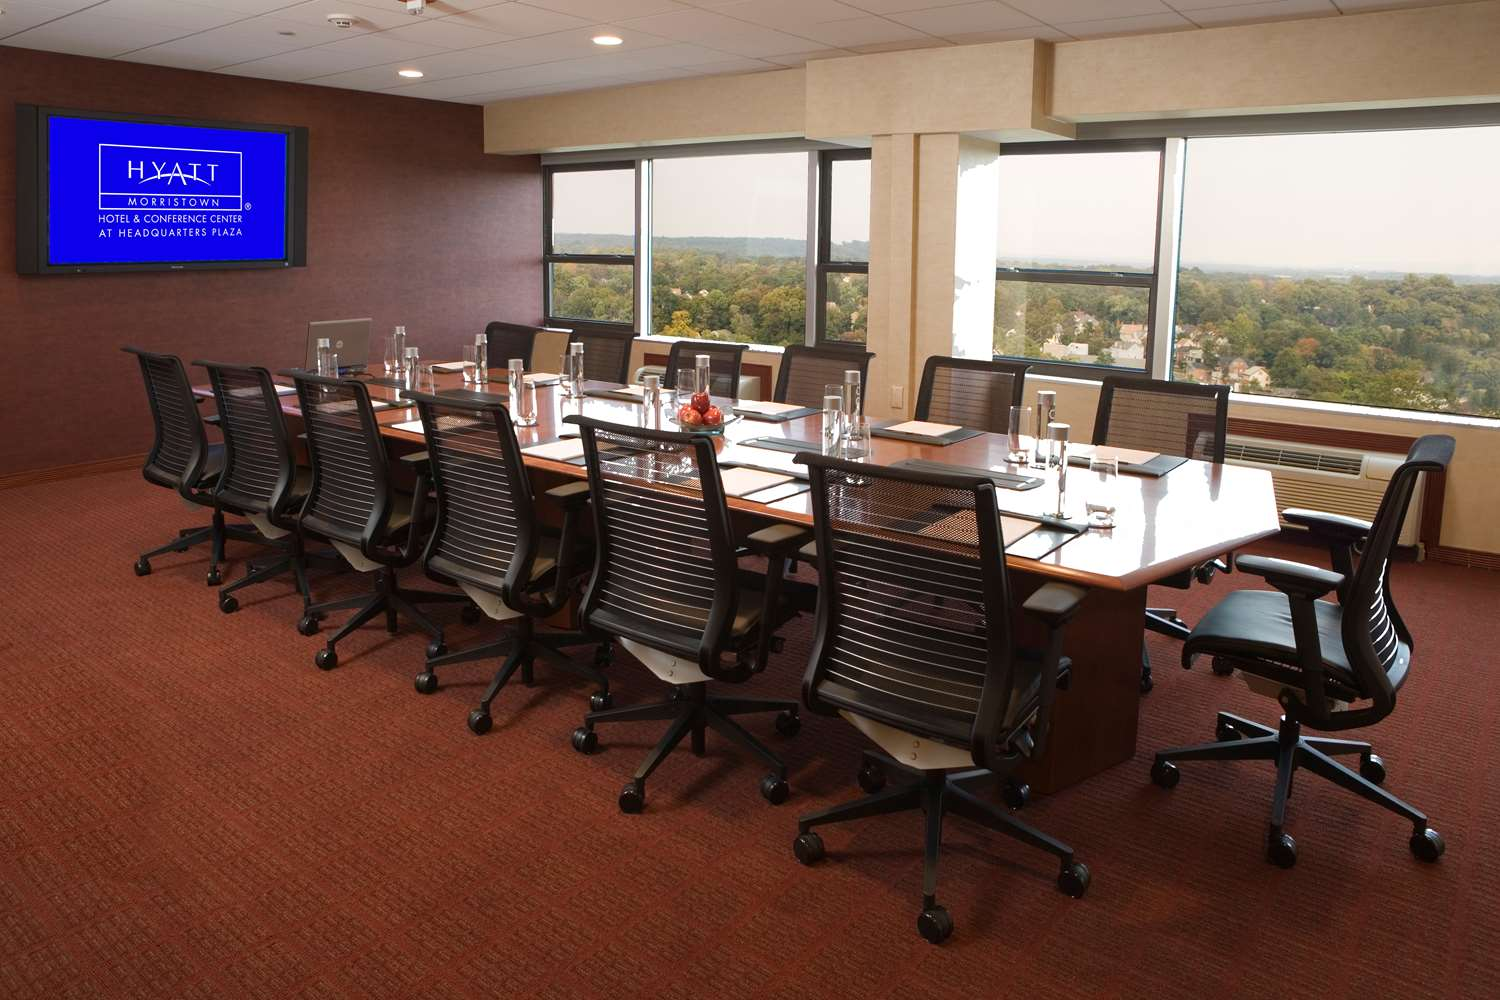 Meeting Facilities - Hyatt Regency Hotel Headquarters Plaza Morristown